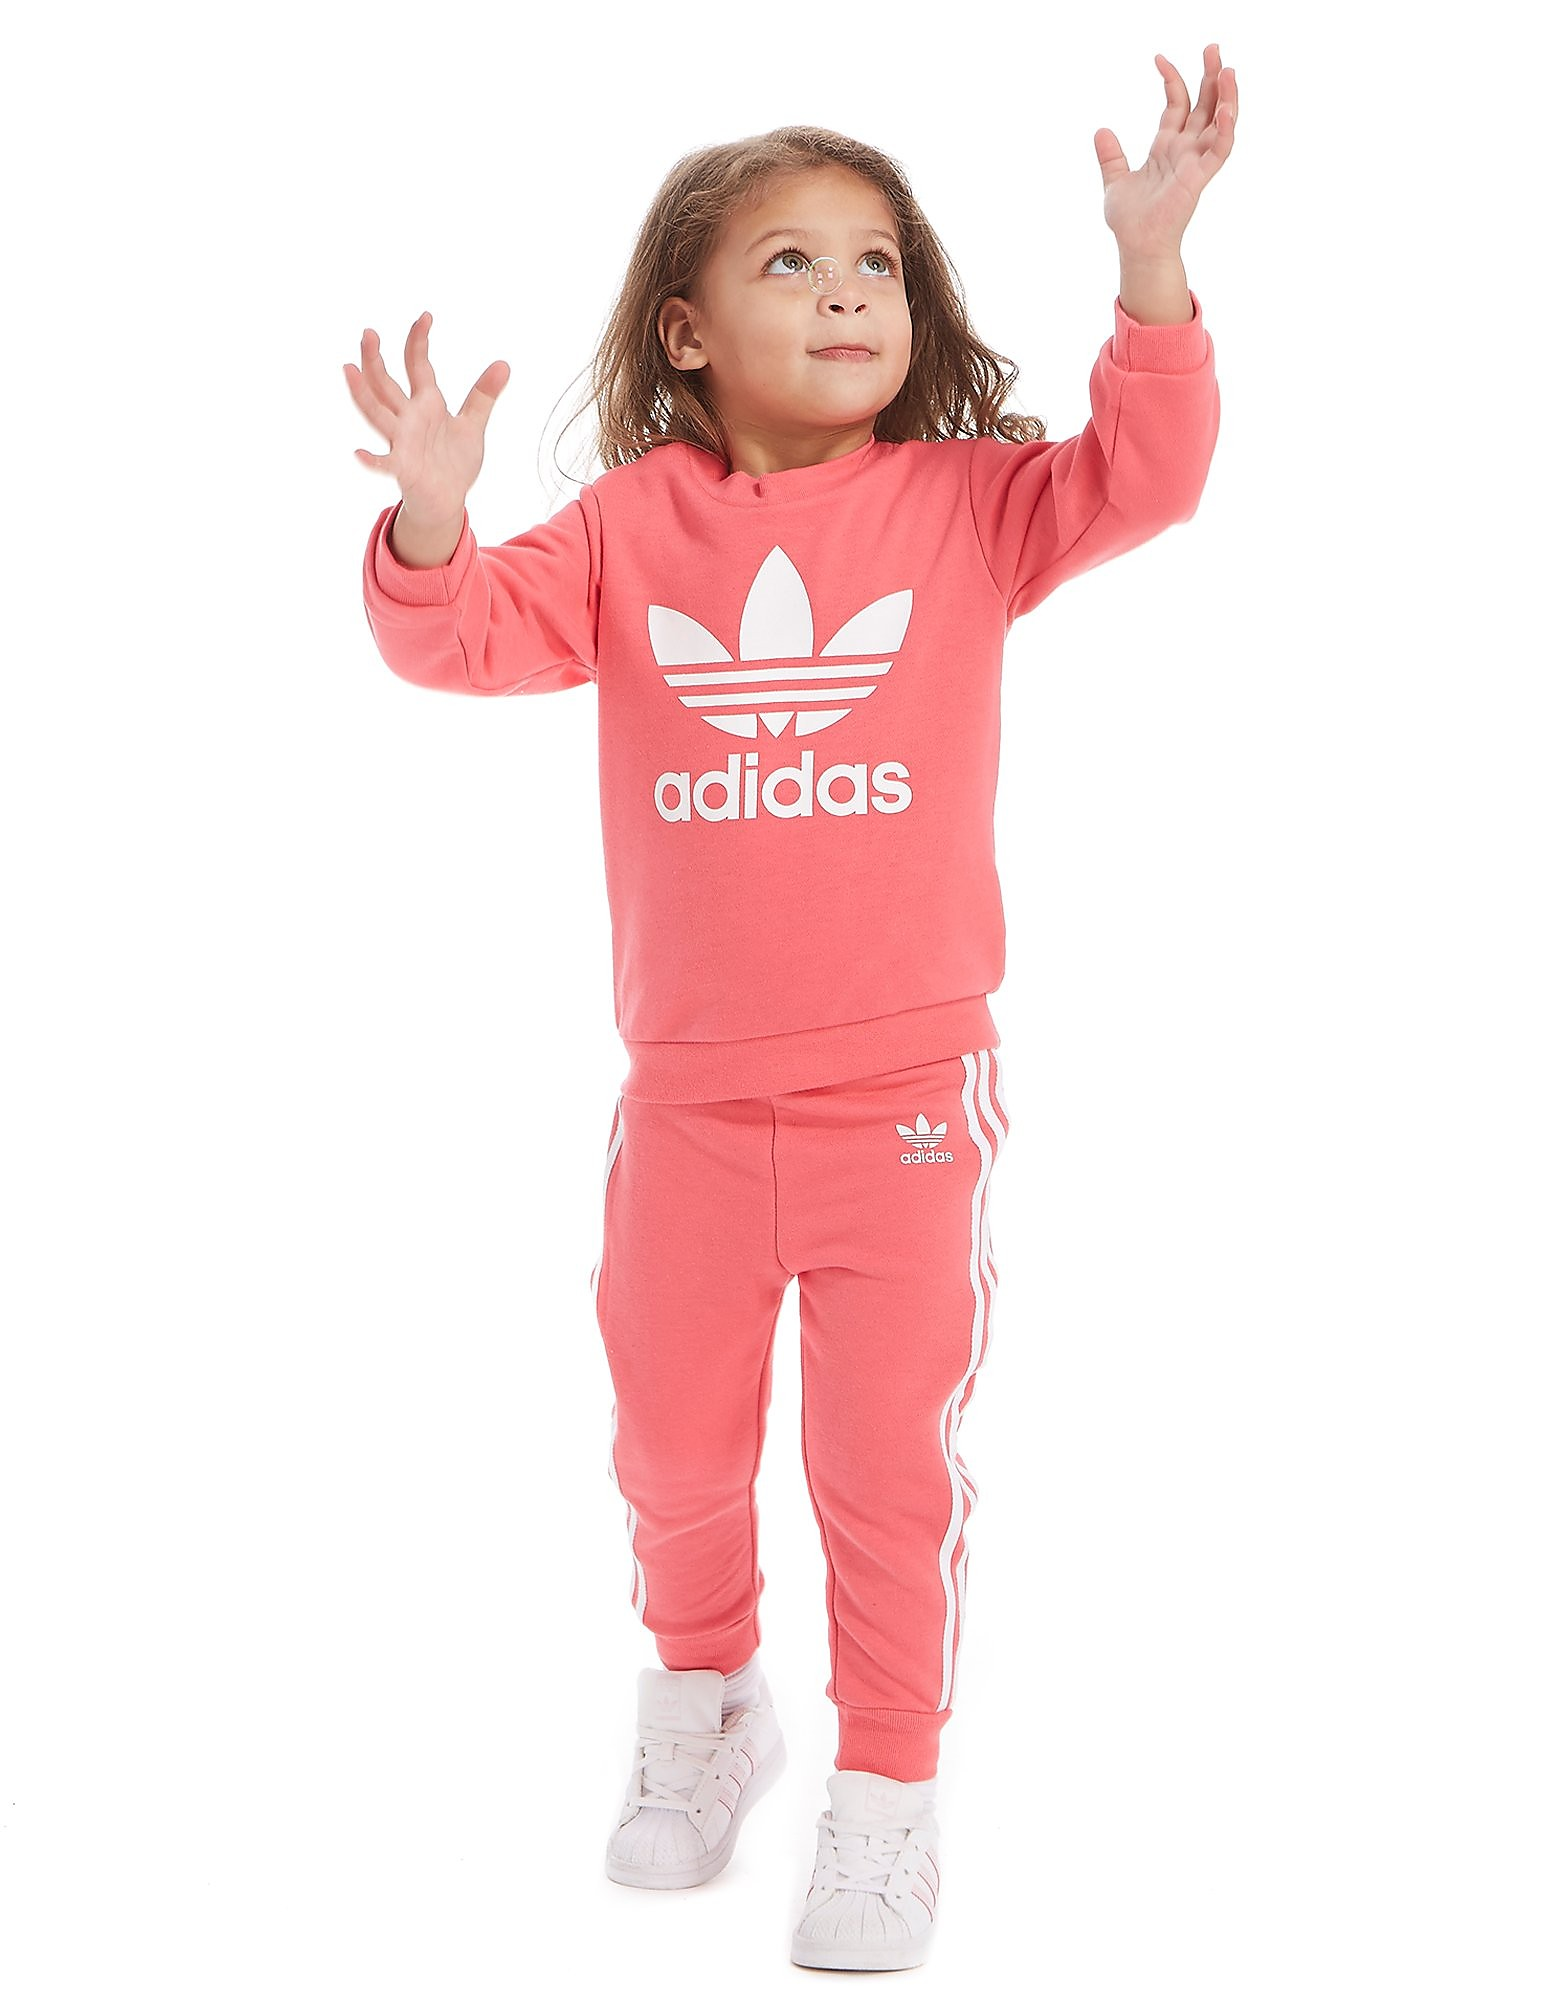 adidas Originals Girls' Adicolor Crew Suit Infant